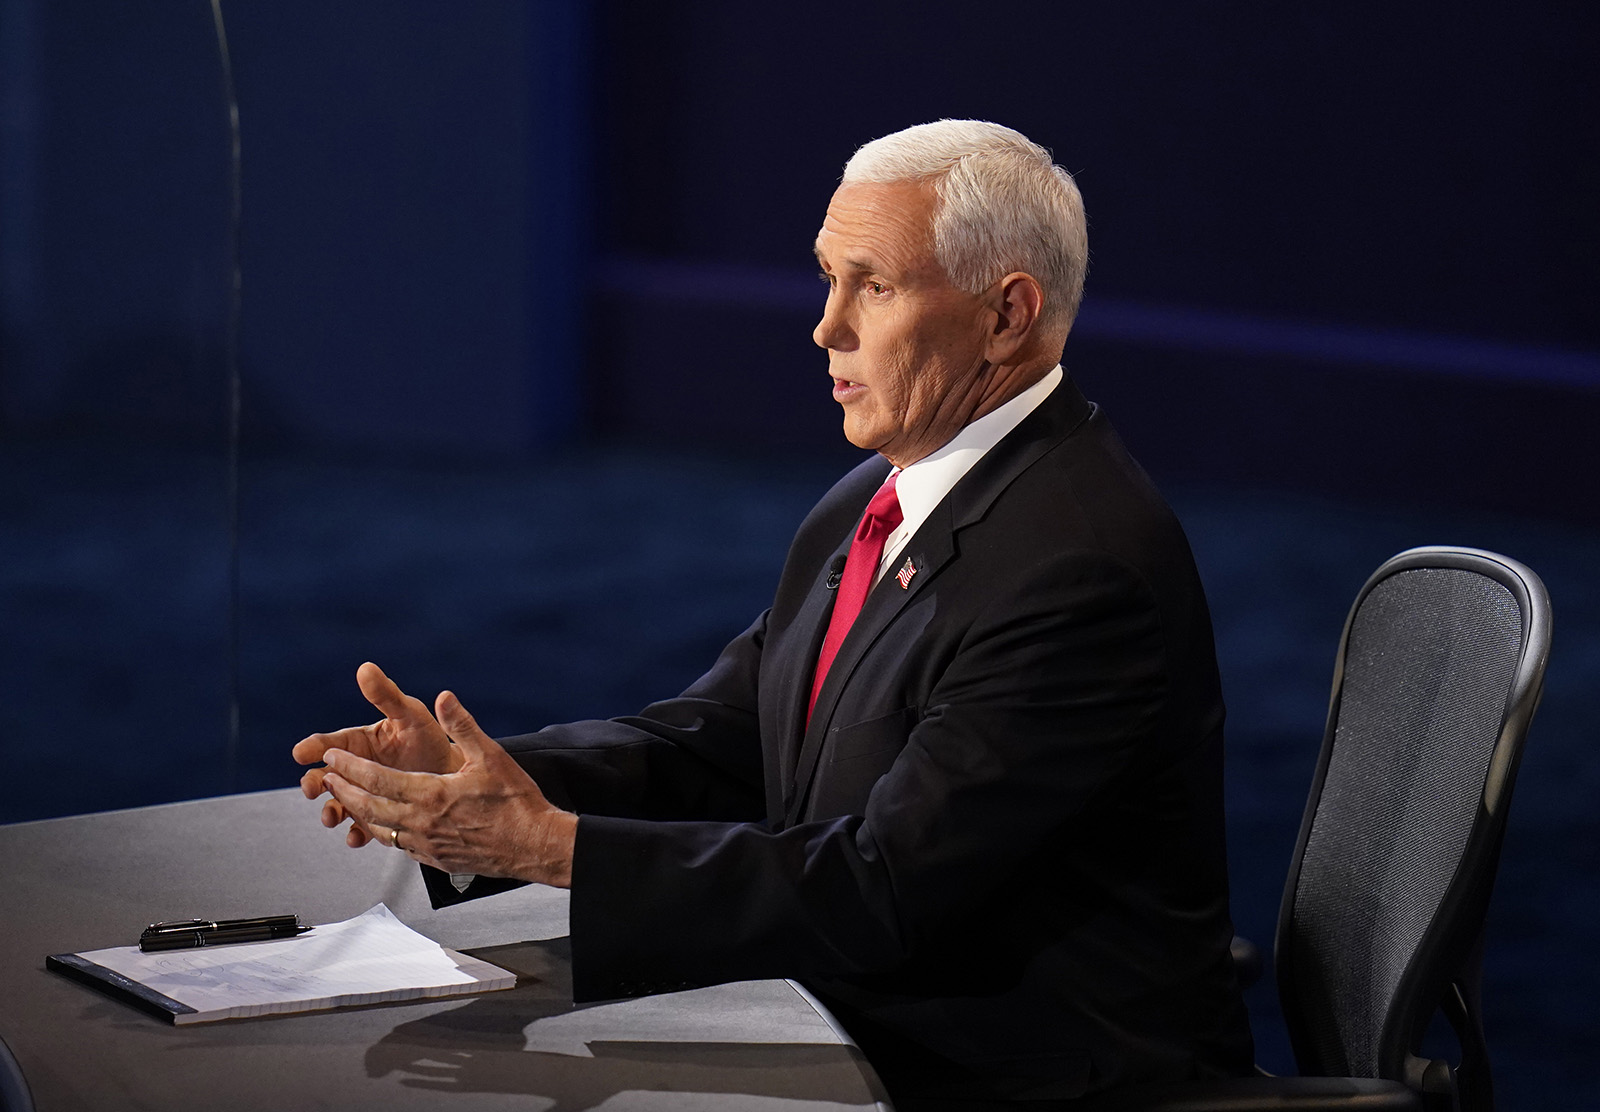 Vice President Mike Pence responds during the vice presidential debate on Wednesday in Salt Lake City.